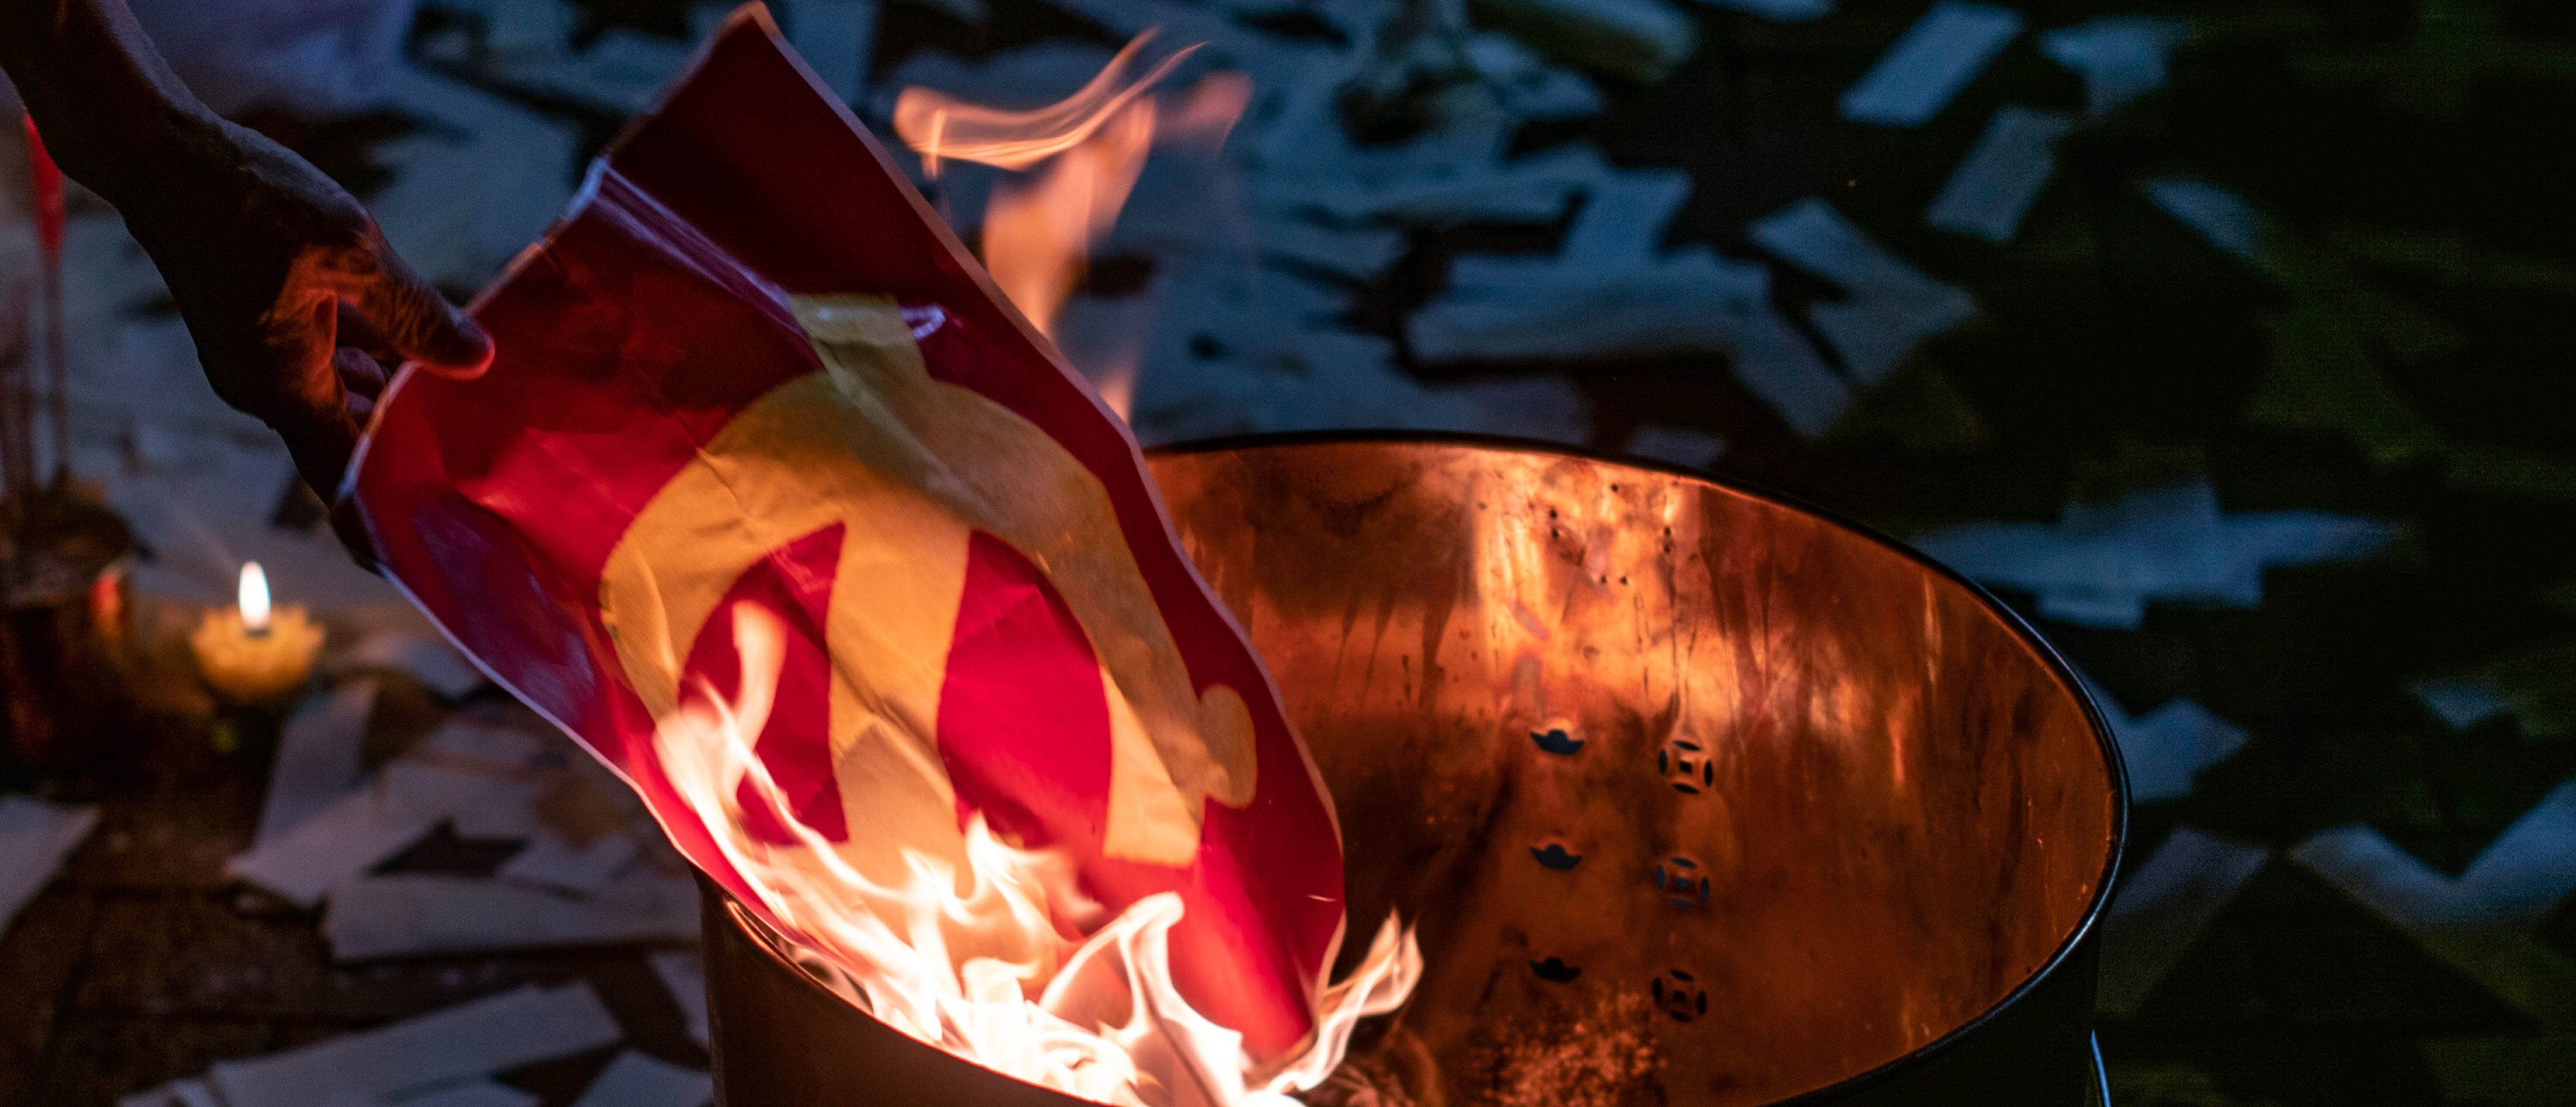 Pro-democracy activist Lui Yuk-lin (not pictured) burns the copy of a Communist hammer and sickle outside the Chinese liaison office in Hong Kong early on June 5, 2019, after the candlelight vigil to mark the 30th anniversary of the 1989 Tiananmen crackdown in Beijing. (Photo by Philip FONG / AFP) (Photo credit should read PHILIP FONG/AFP via Getty Images)